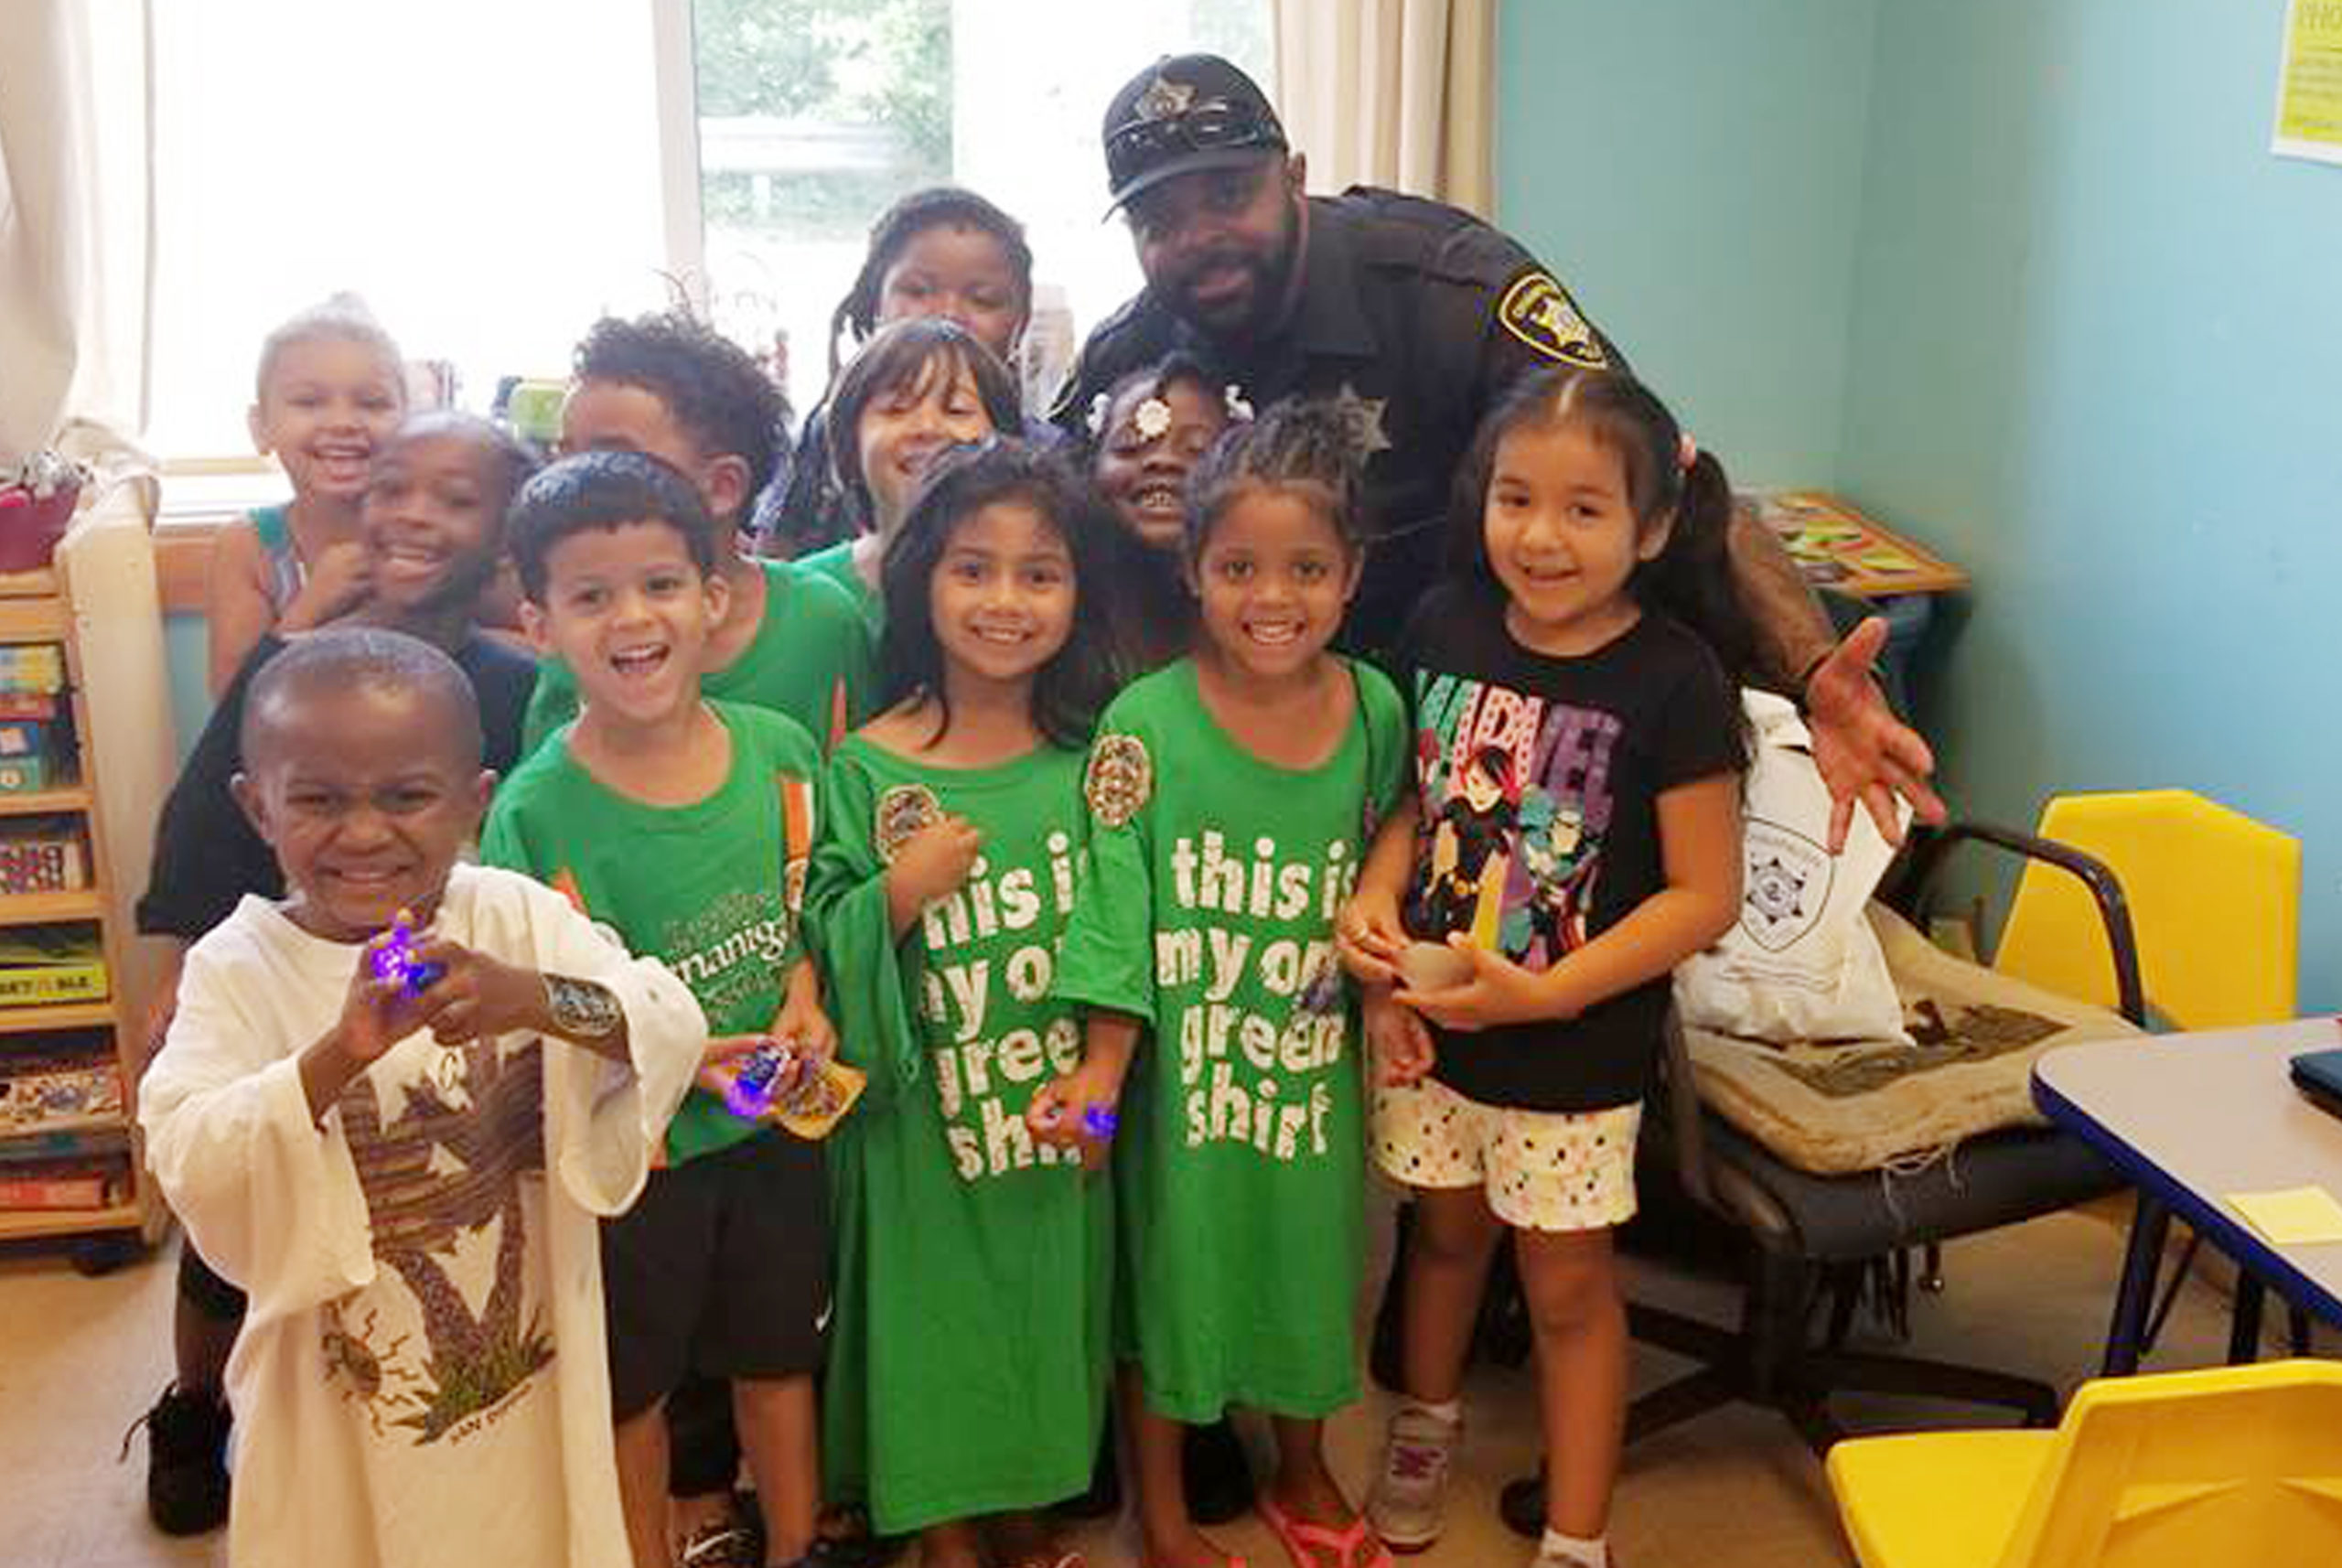 Police Officer with group of children